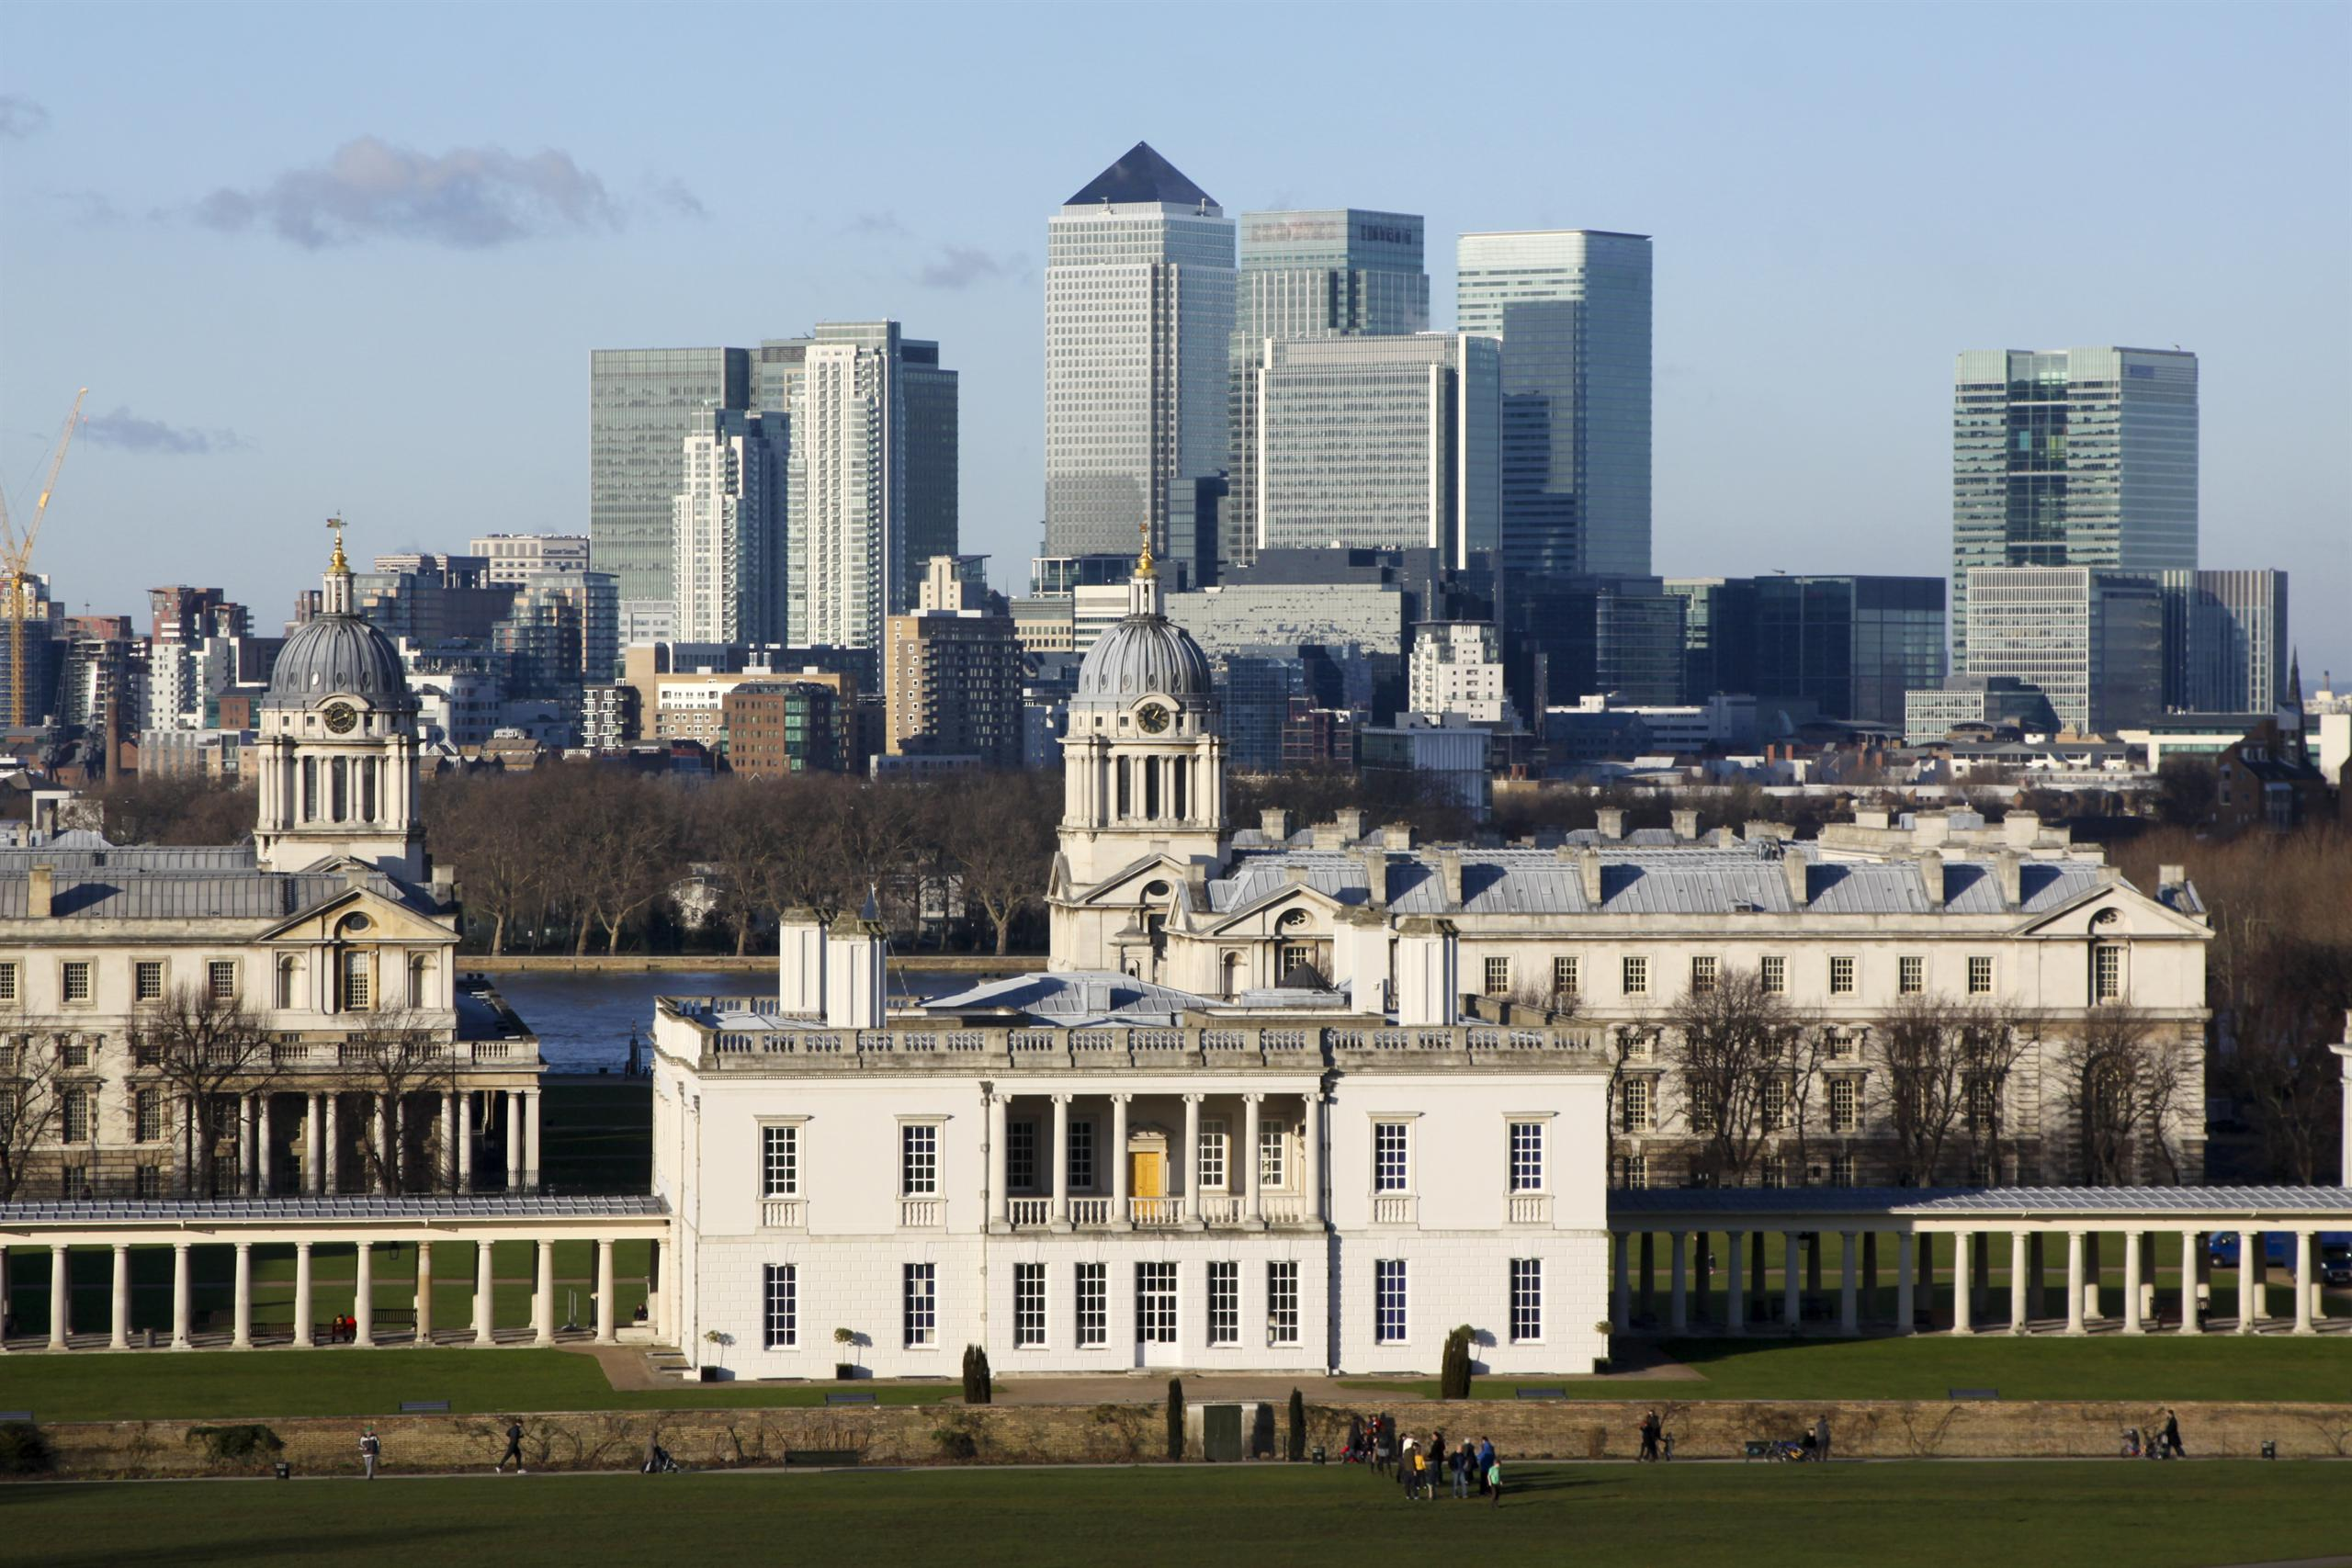 View of the museum and London skyline